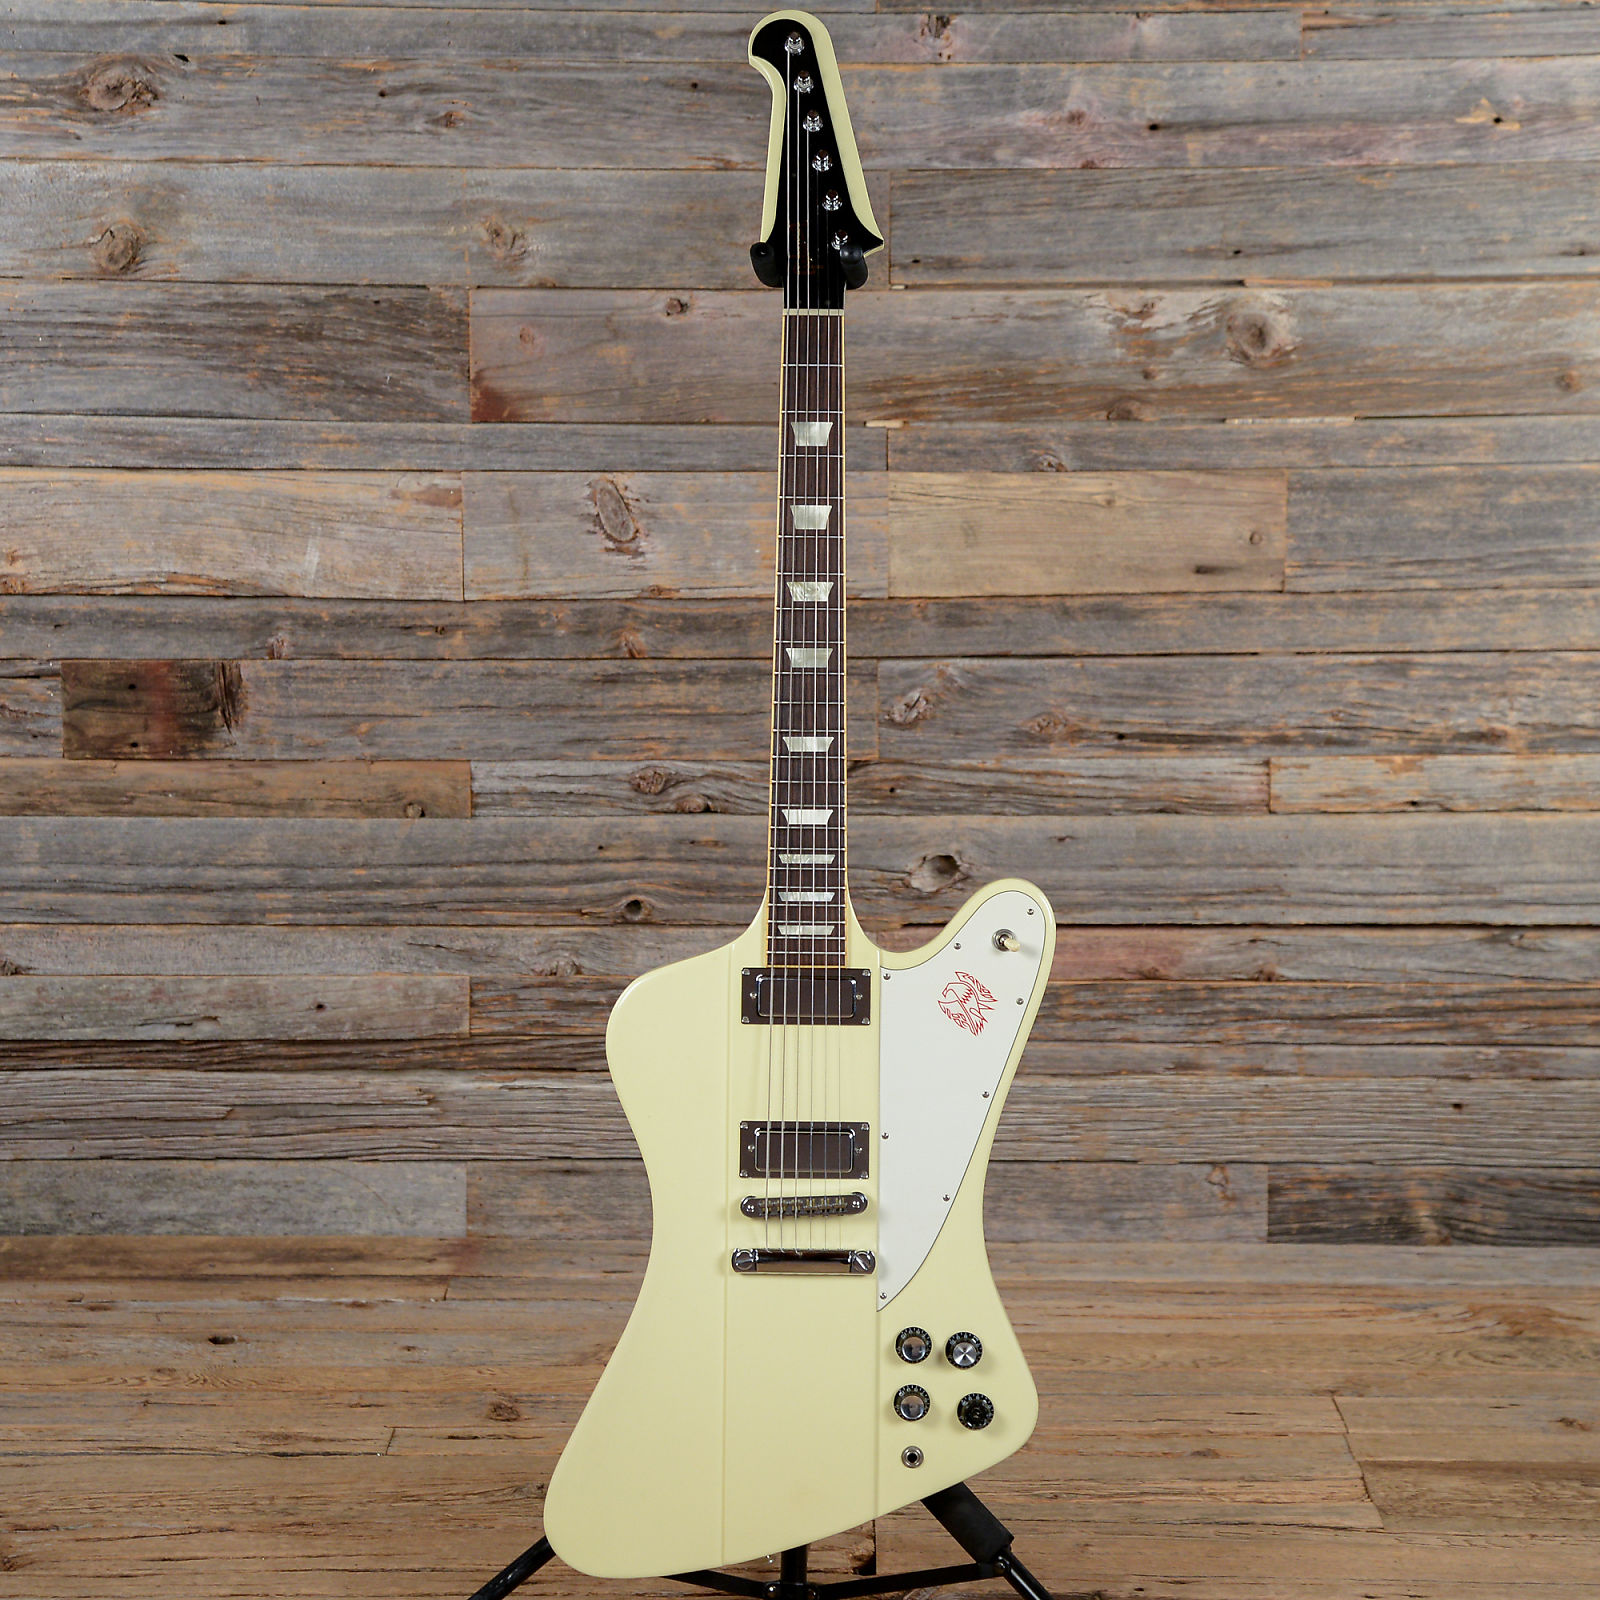 2008 gibson firebird v classic white cool electric